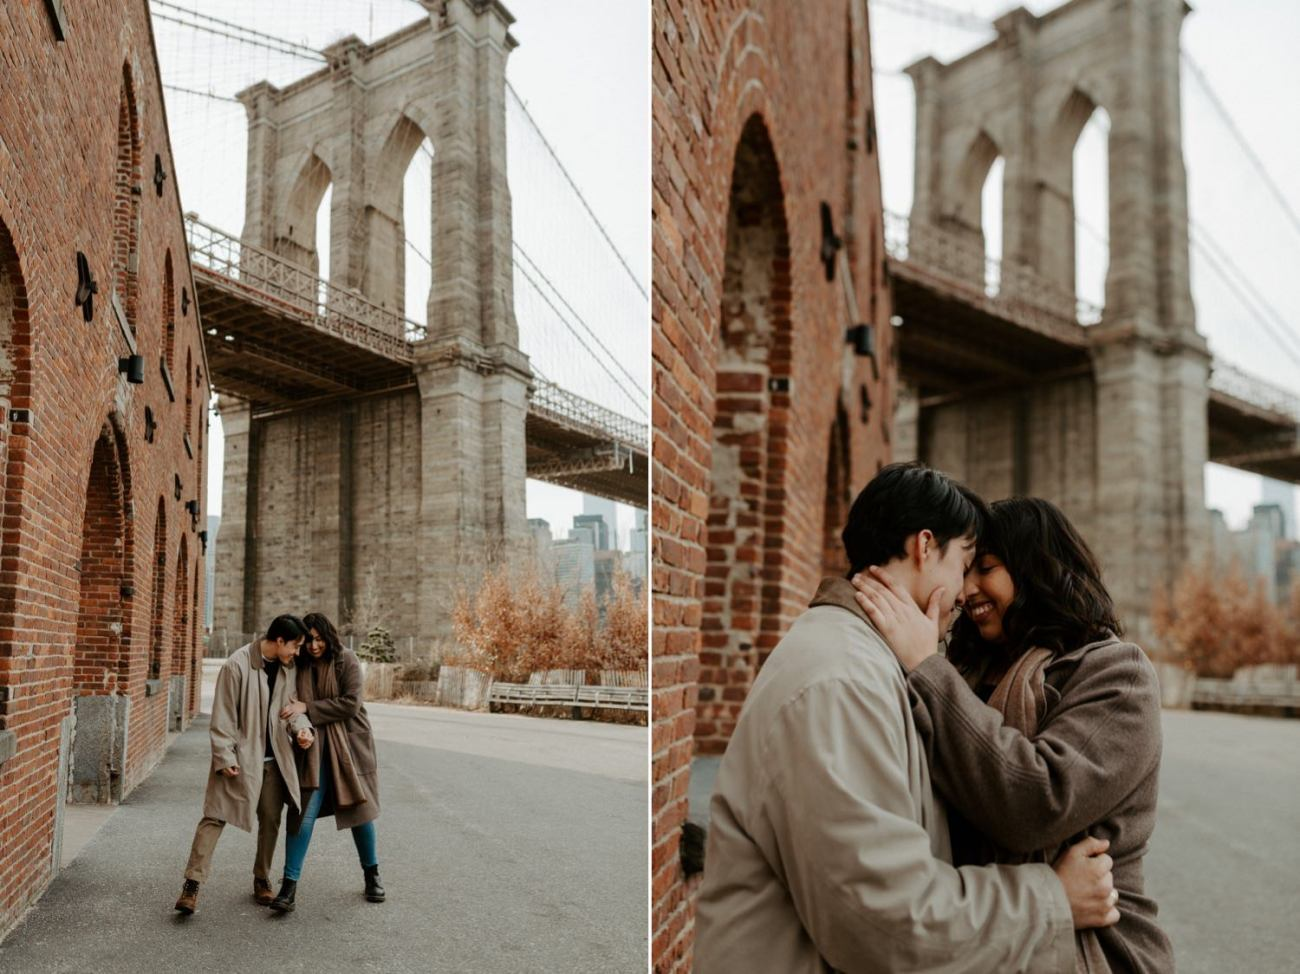 Dumbo Brooklyn Engagement Photos New York City Couple Session New York Wedding Photographer NYC Best Engagement Photos Location Anais Possamai Photography 21